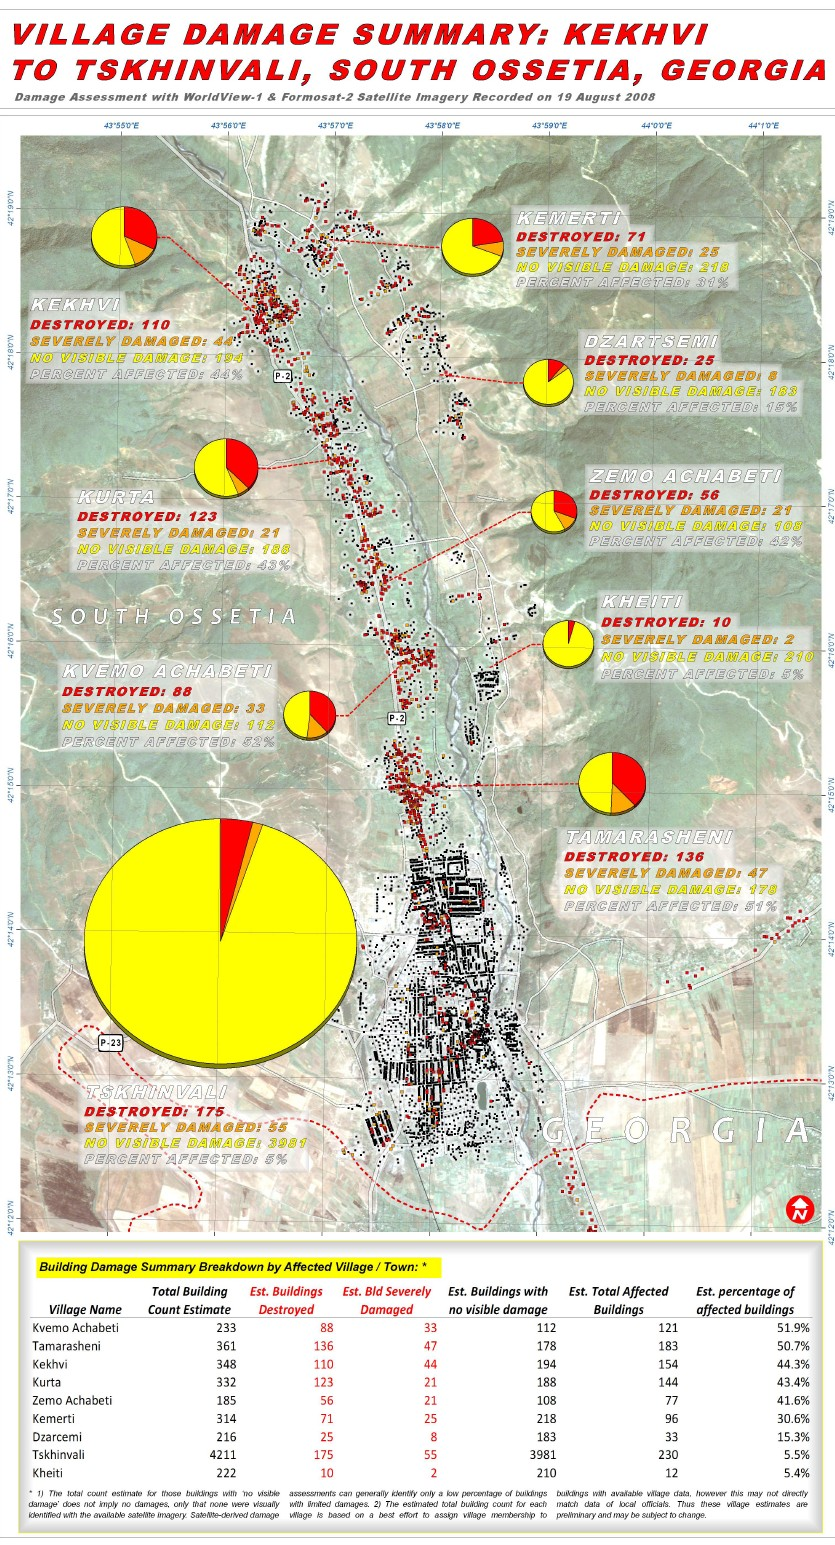 Comparison of damage suffered by South Ossetia's capital Tskhinvali and Georgian villages to the north of it